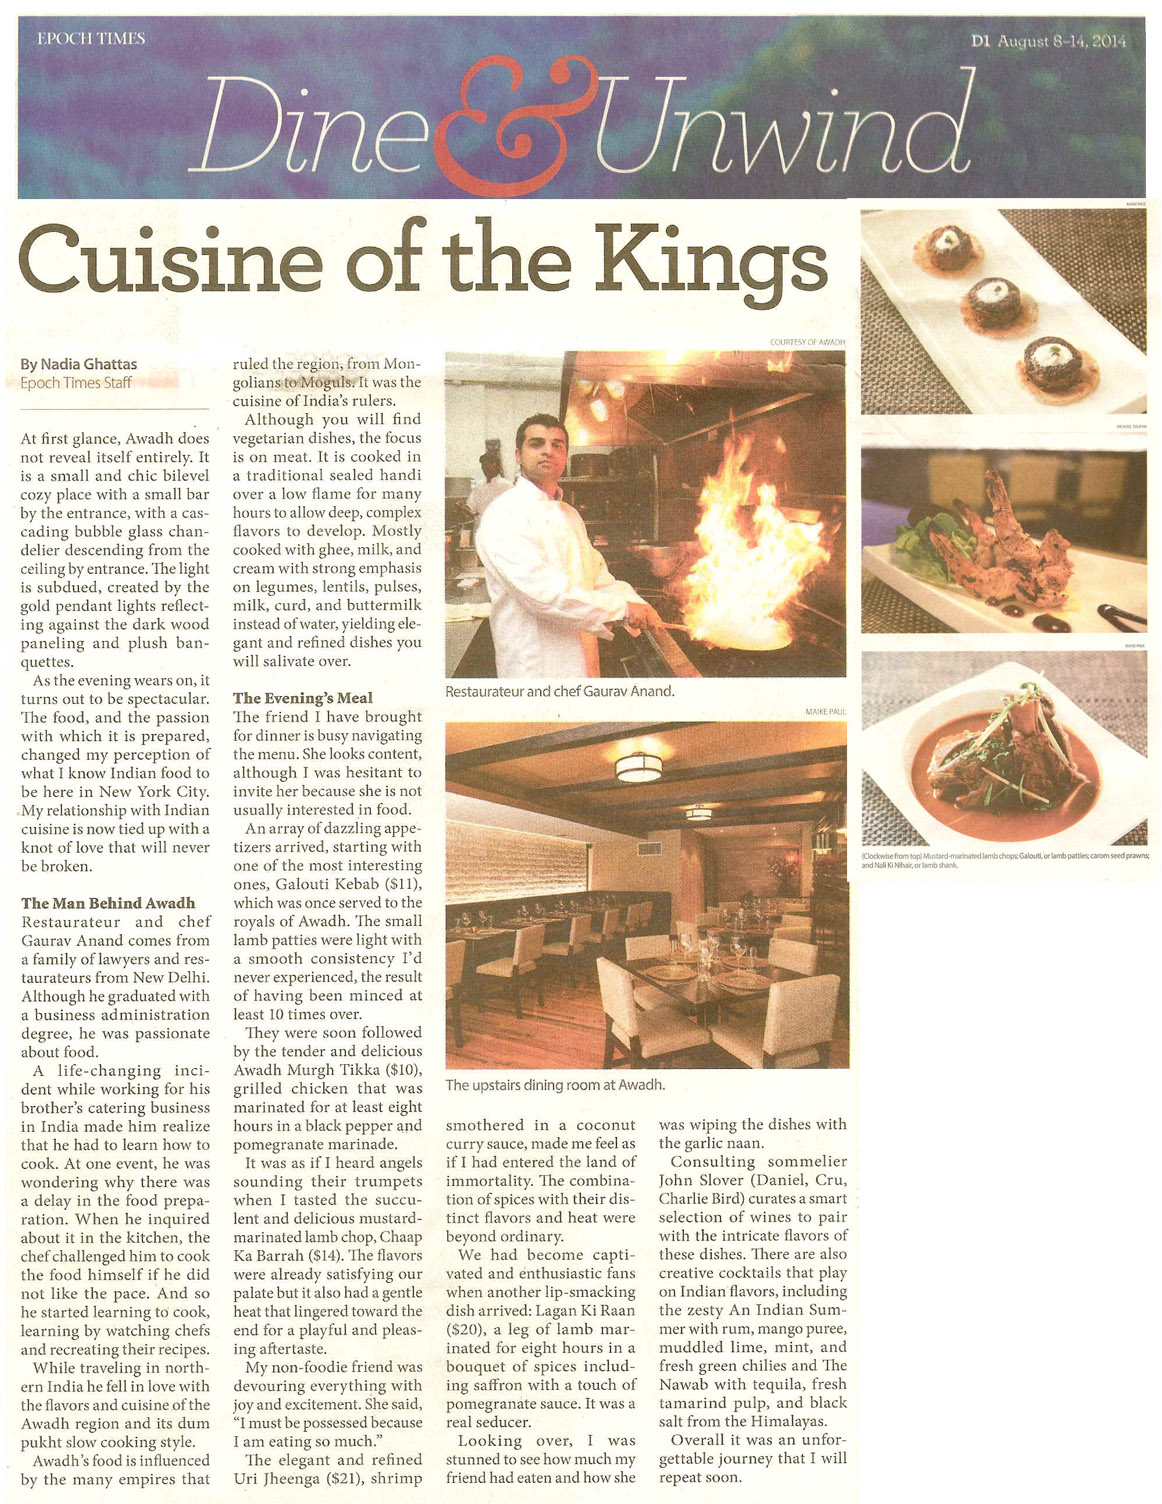 Cuisine of the Kings, Epoch TimesA life-changing incident while working for his brother's catering business in India made him realize that he had to learn how to cook.... -